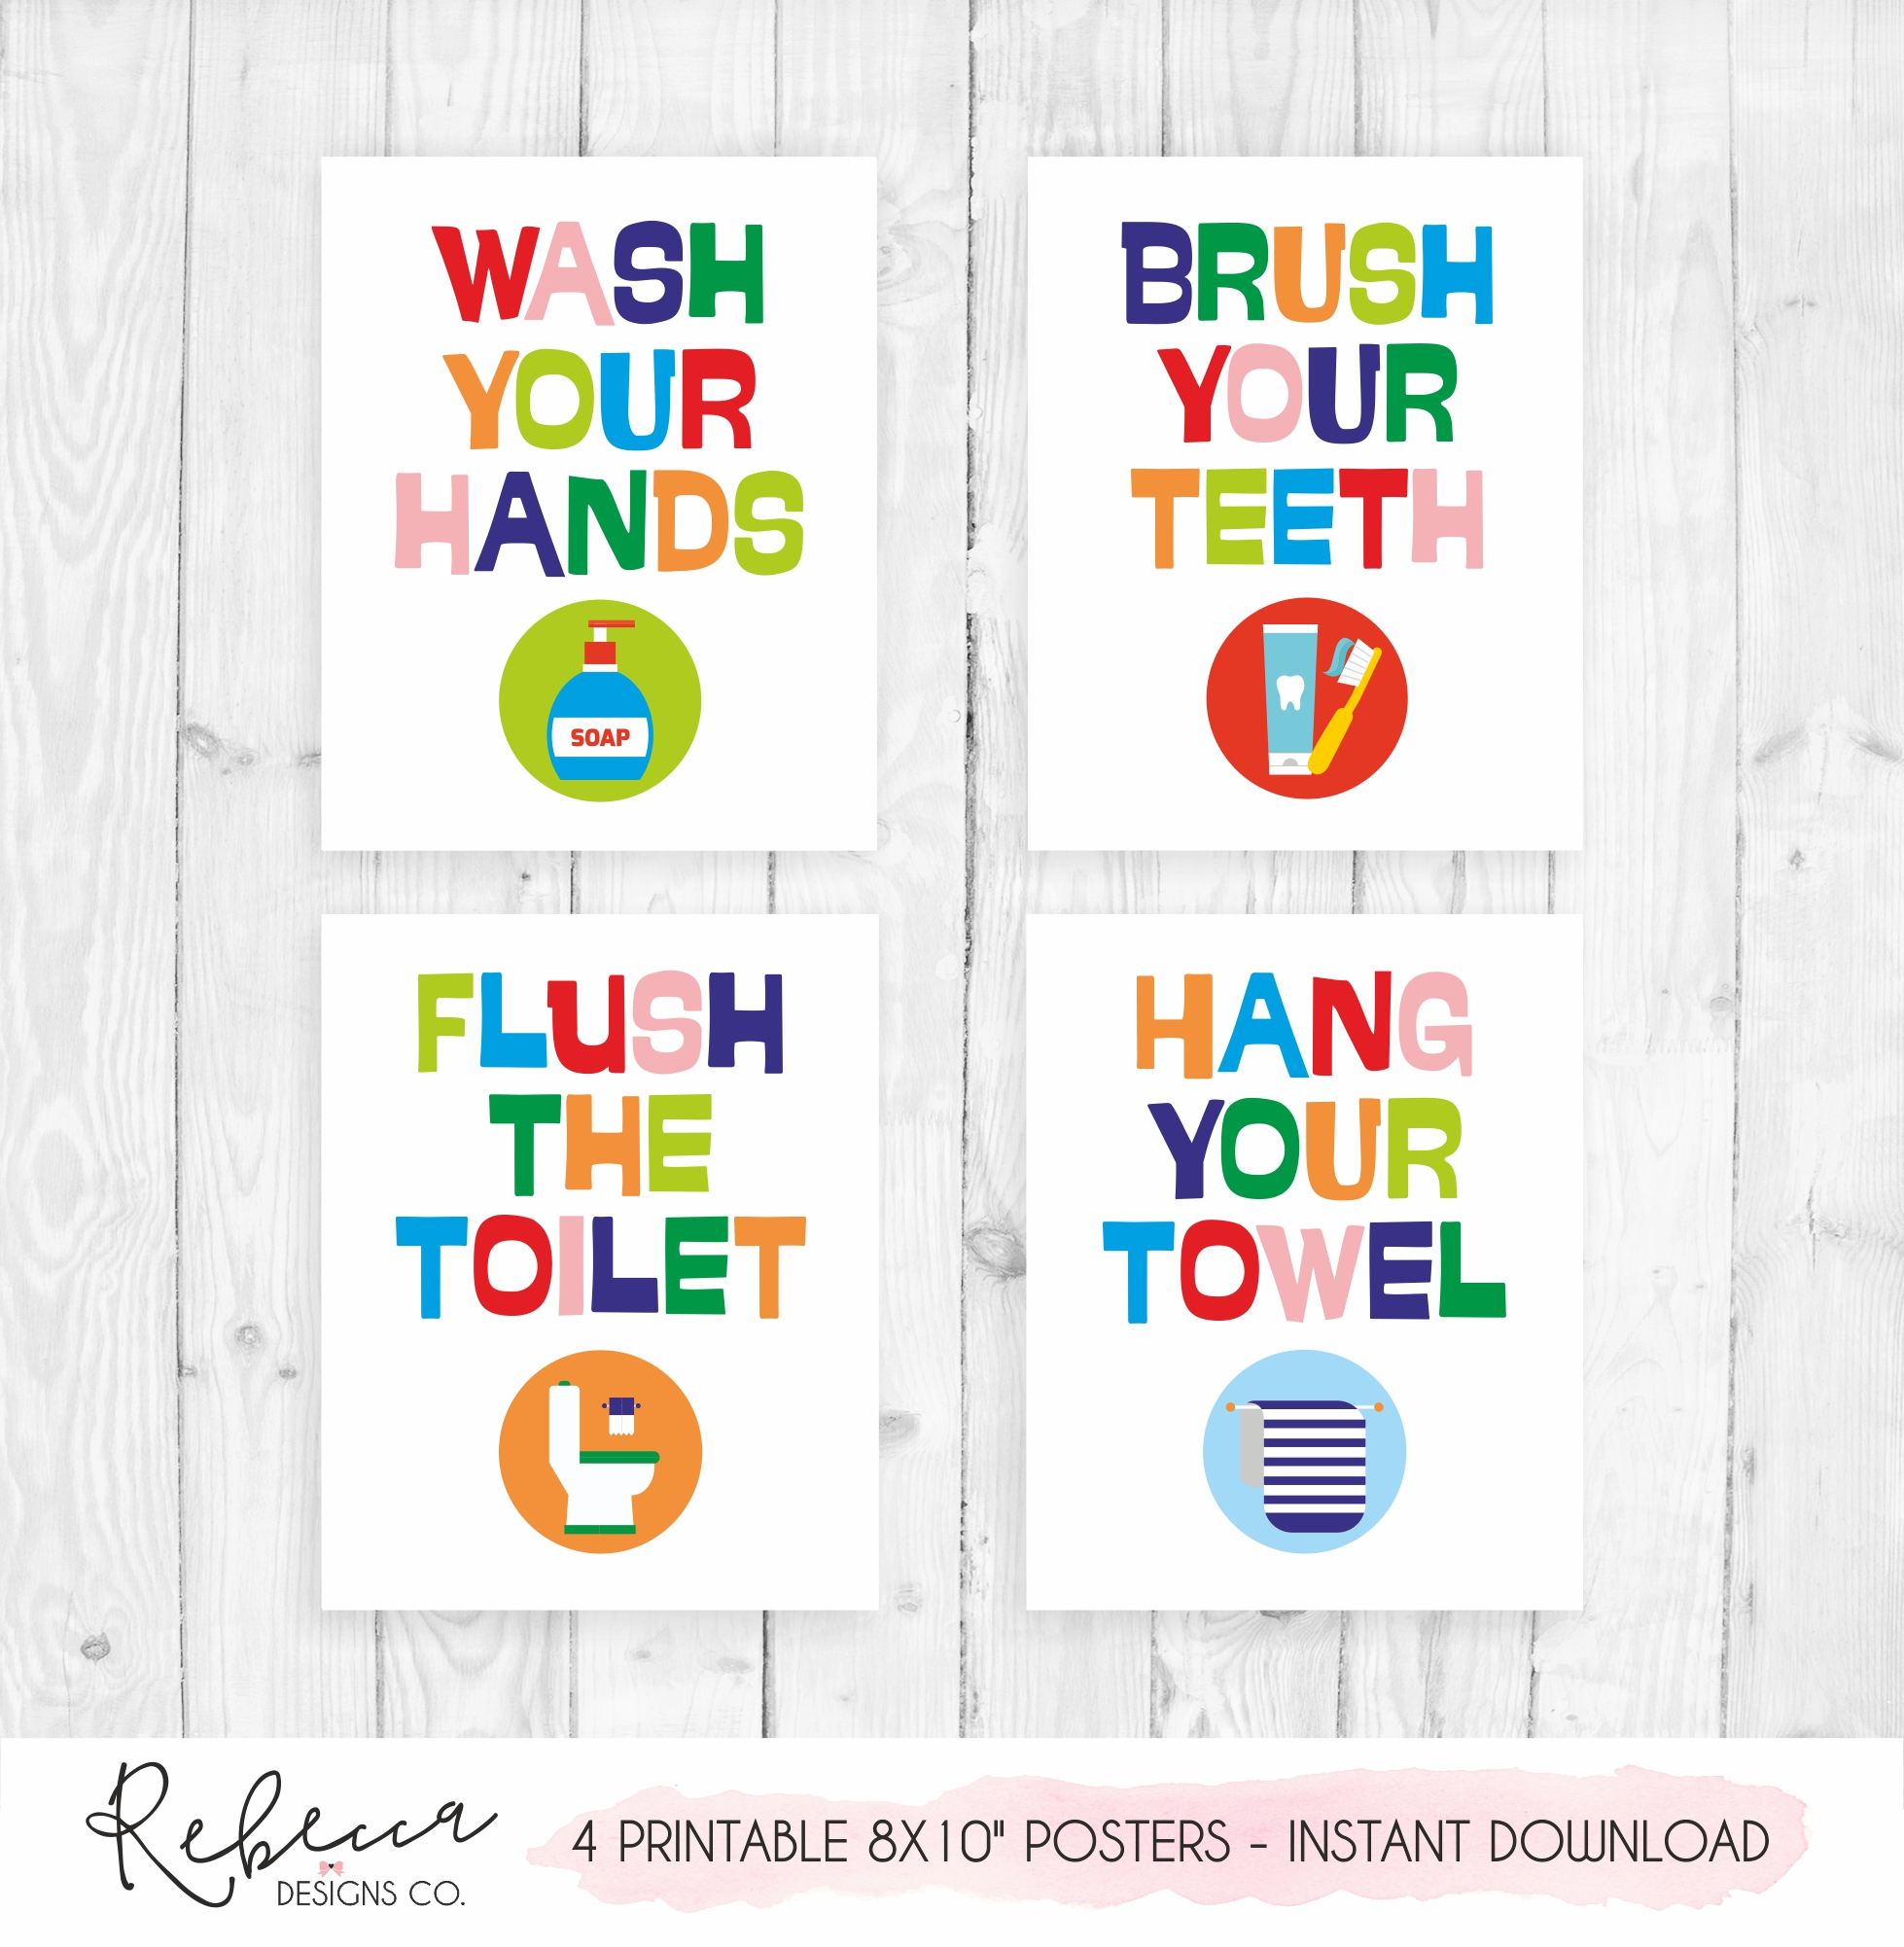 photo regarding Printable Bathroom Rules called Small children rest room printable posters Quick obtain